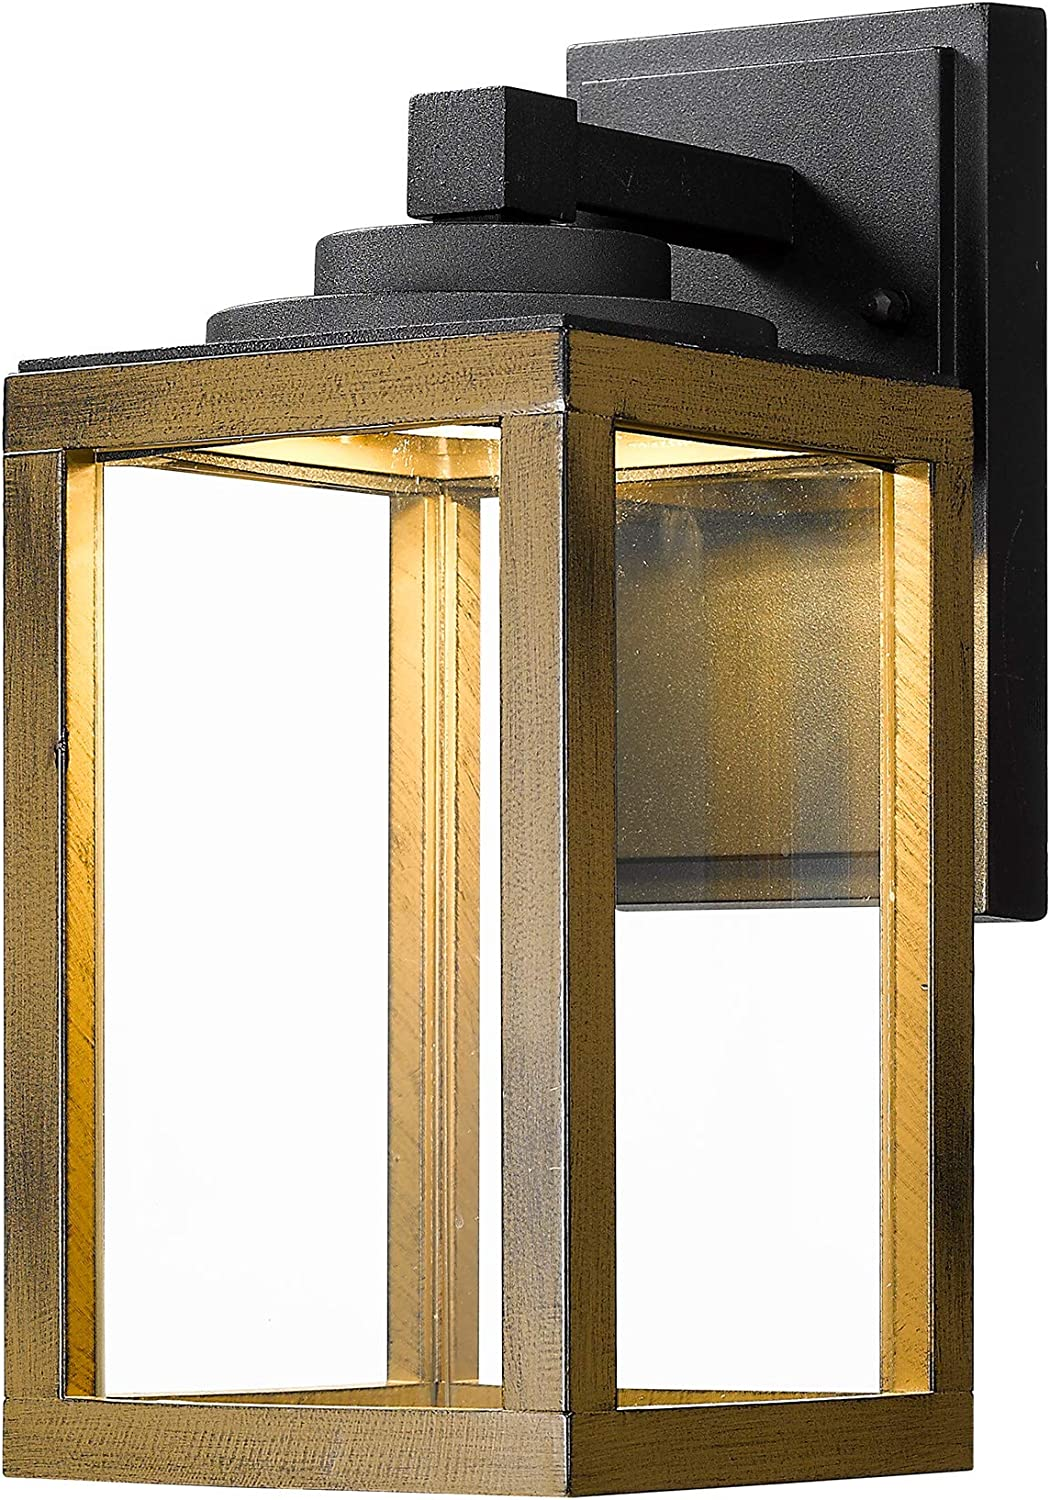 Zeyu Exterior Led Wall Lantern 10w Outdoor Wall Sconce Lighting With Clear Glass Shade In Black Finish And Wood Grain Z1953 Bw Amazon Com